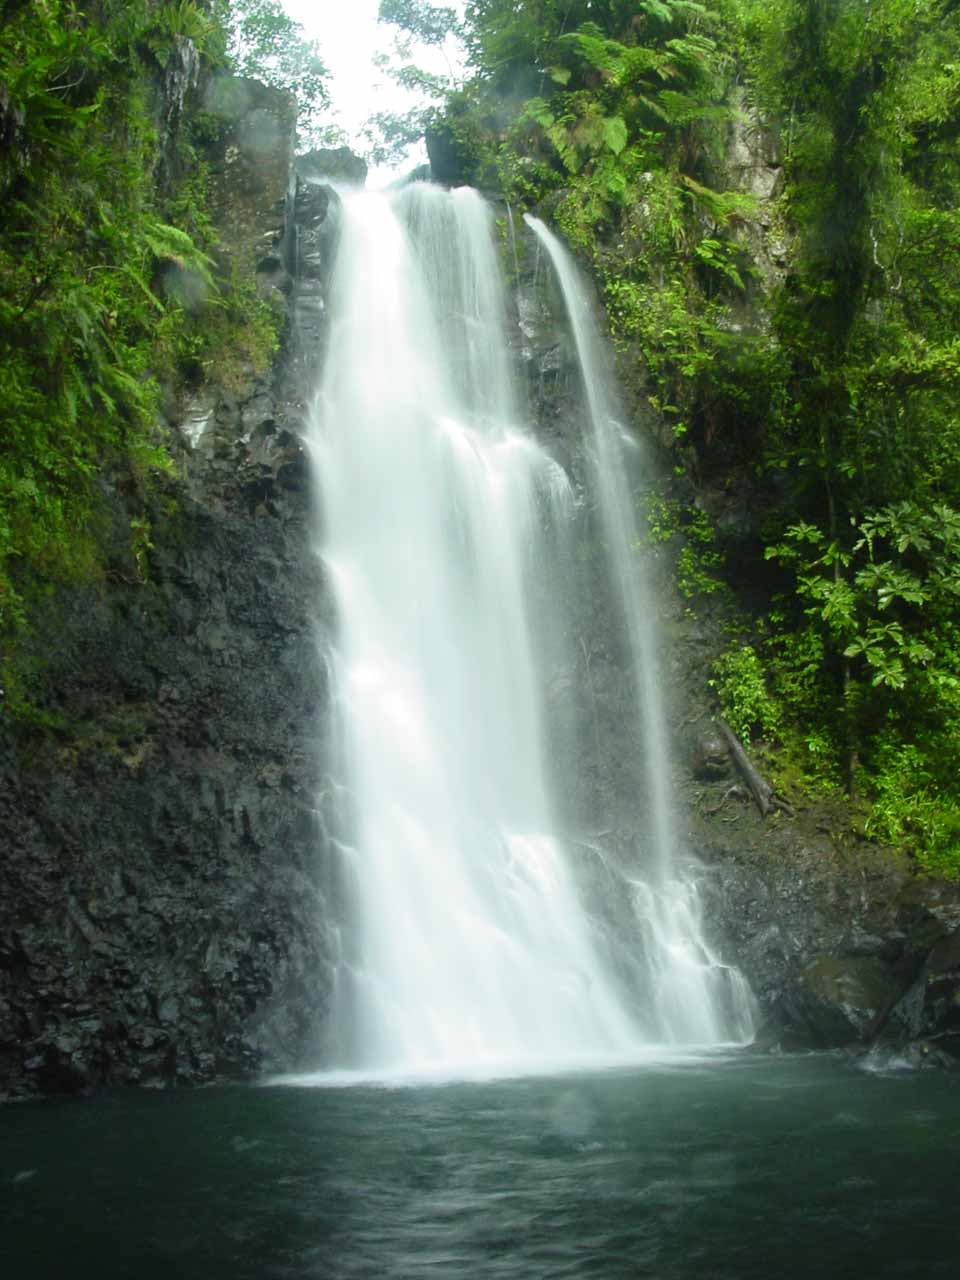 The Middle Tavoro Waterfall